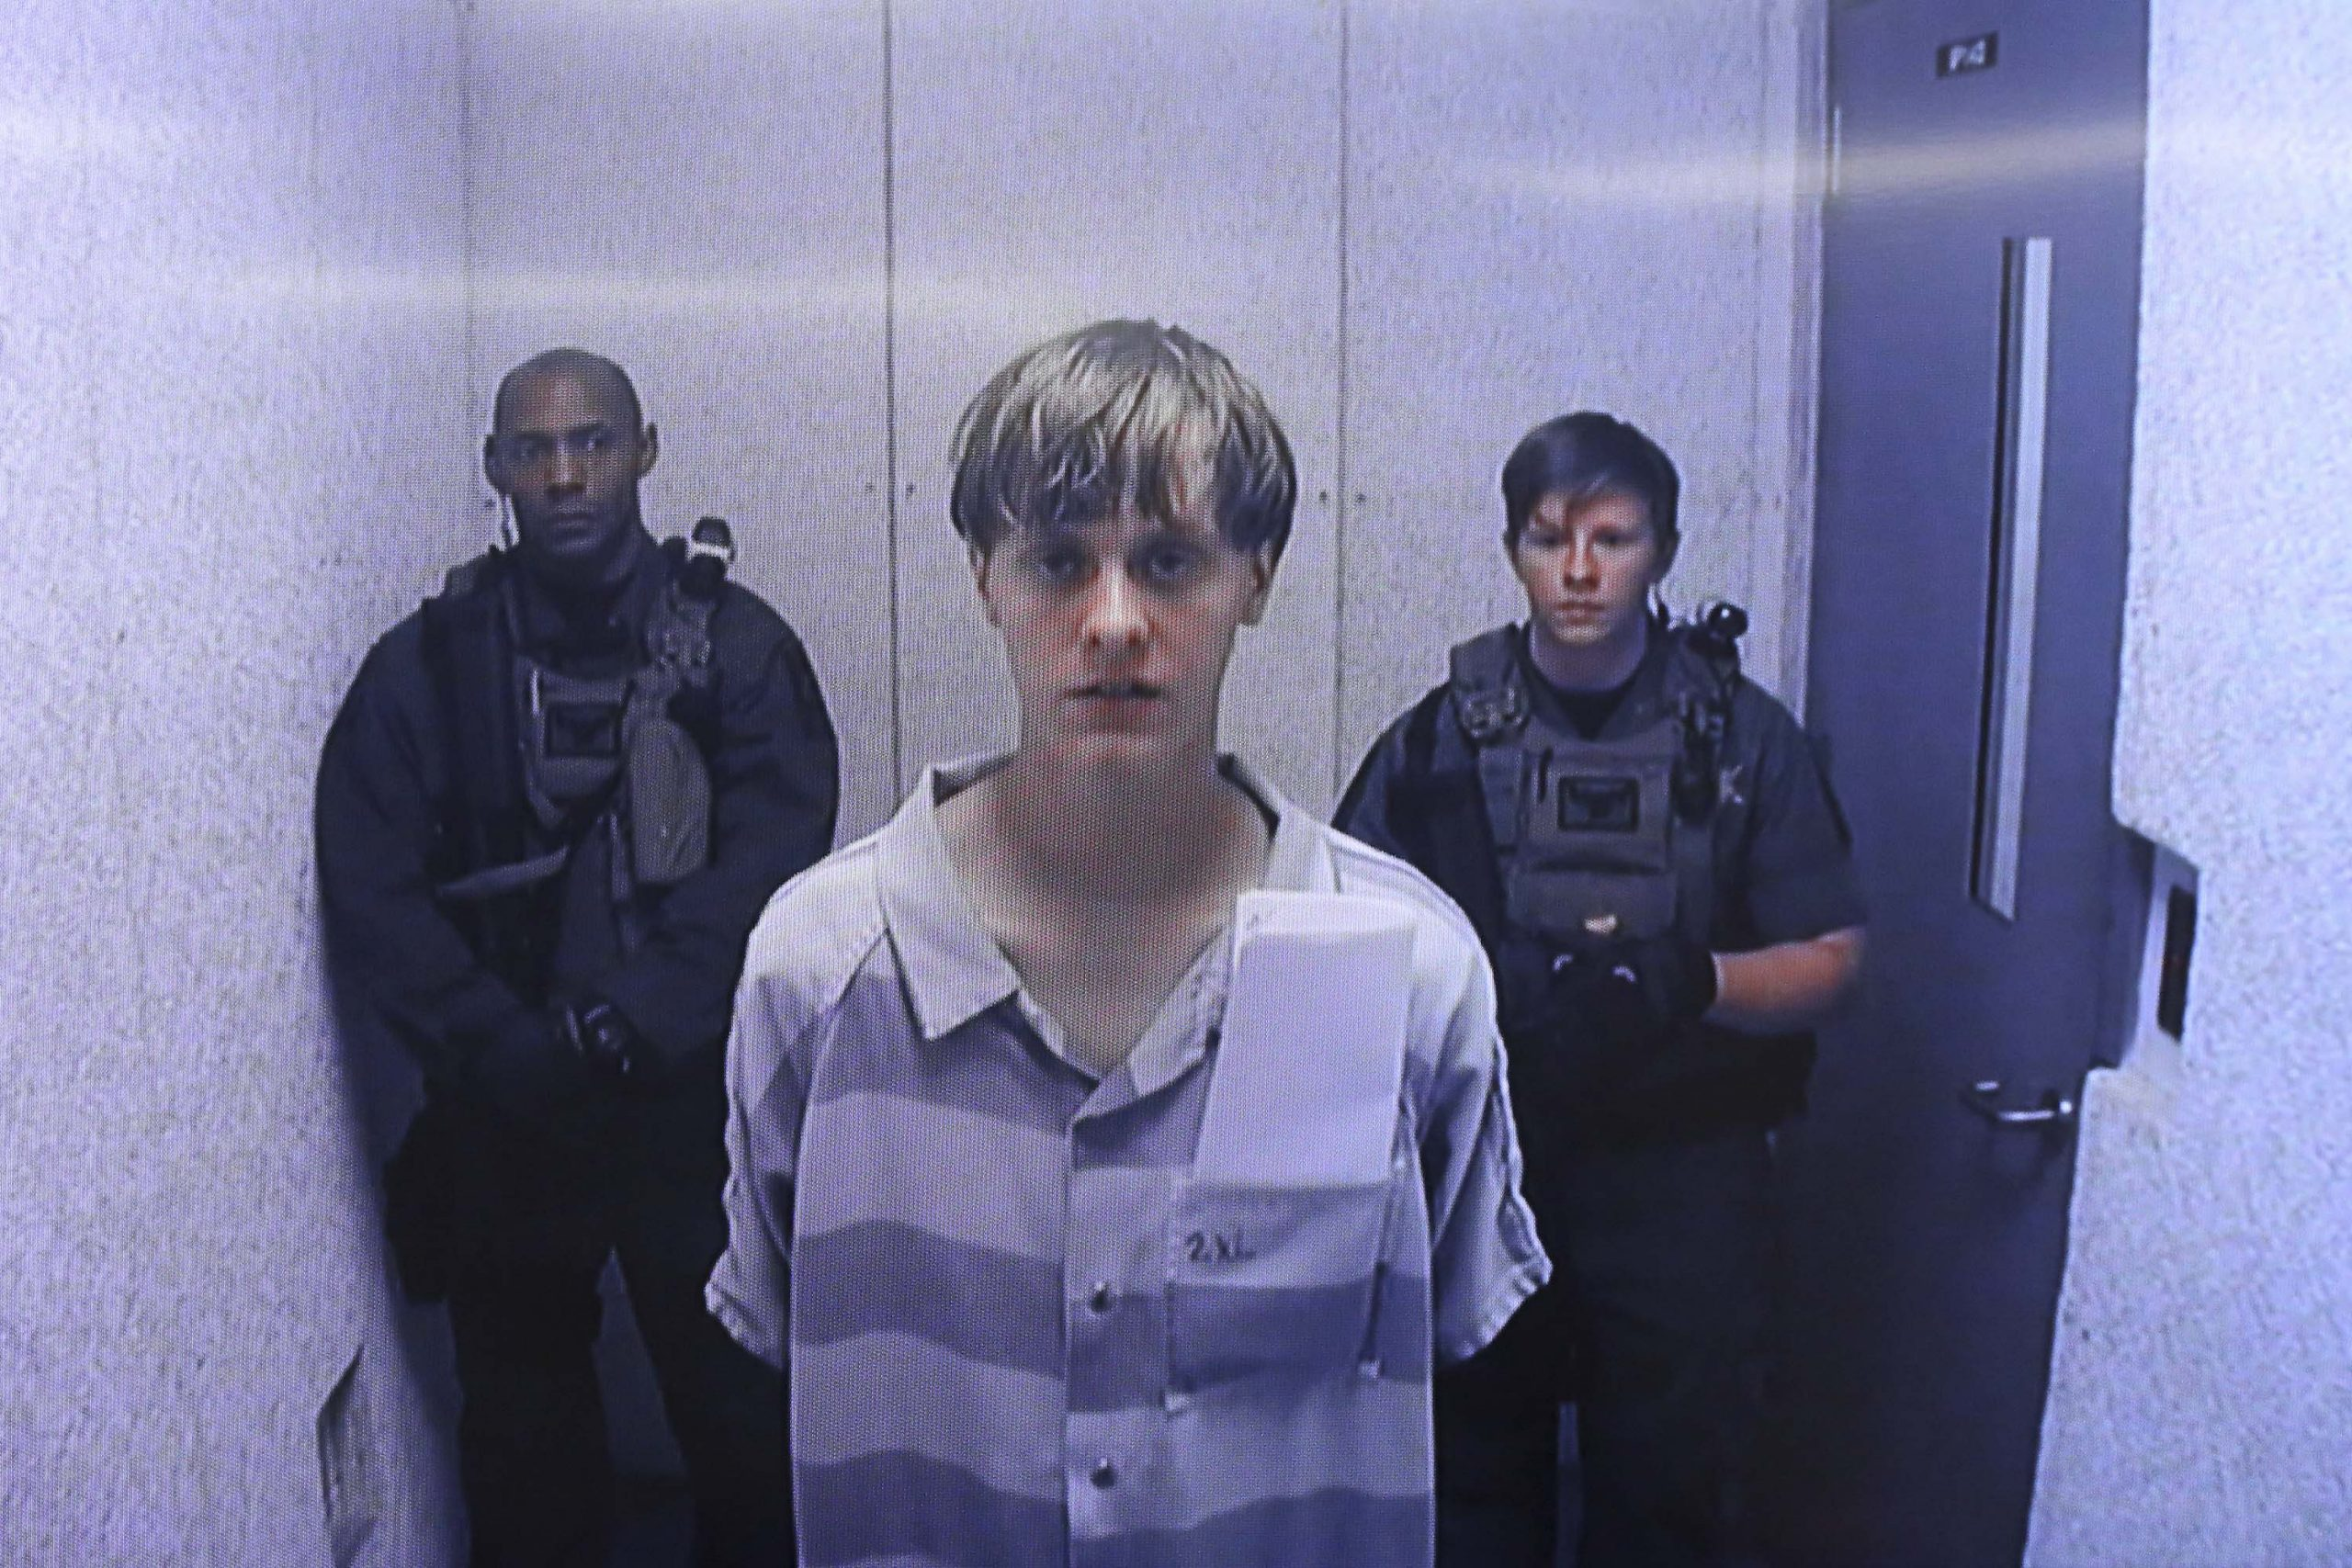 19 June 2015: Dylann Roof killed nine people at the Emanuel African Methodist Episcopal Church in Charleston, South Carolina. This image is from the video uplink from the detention centre to the courtroom. (Photo by Grace Beahm-Pool/ Getty Images)